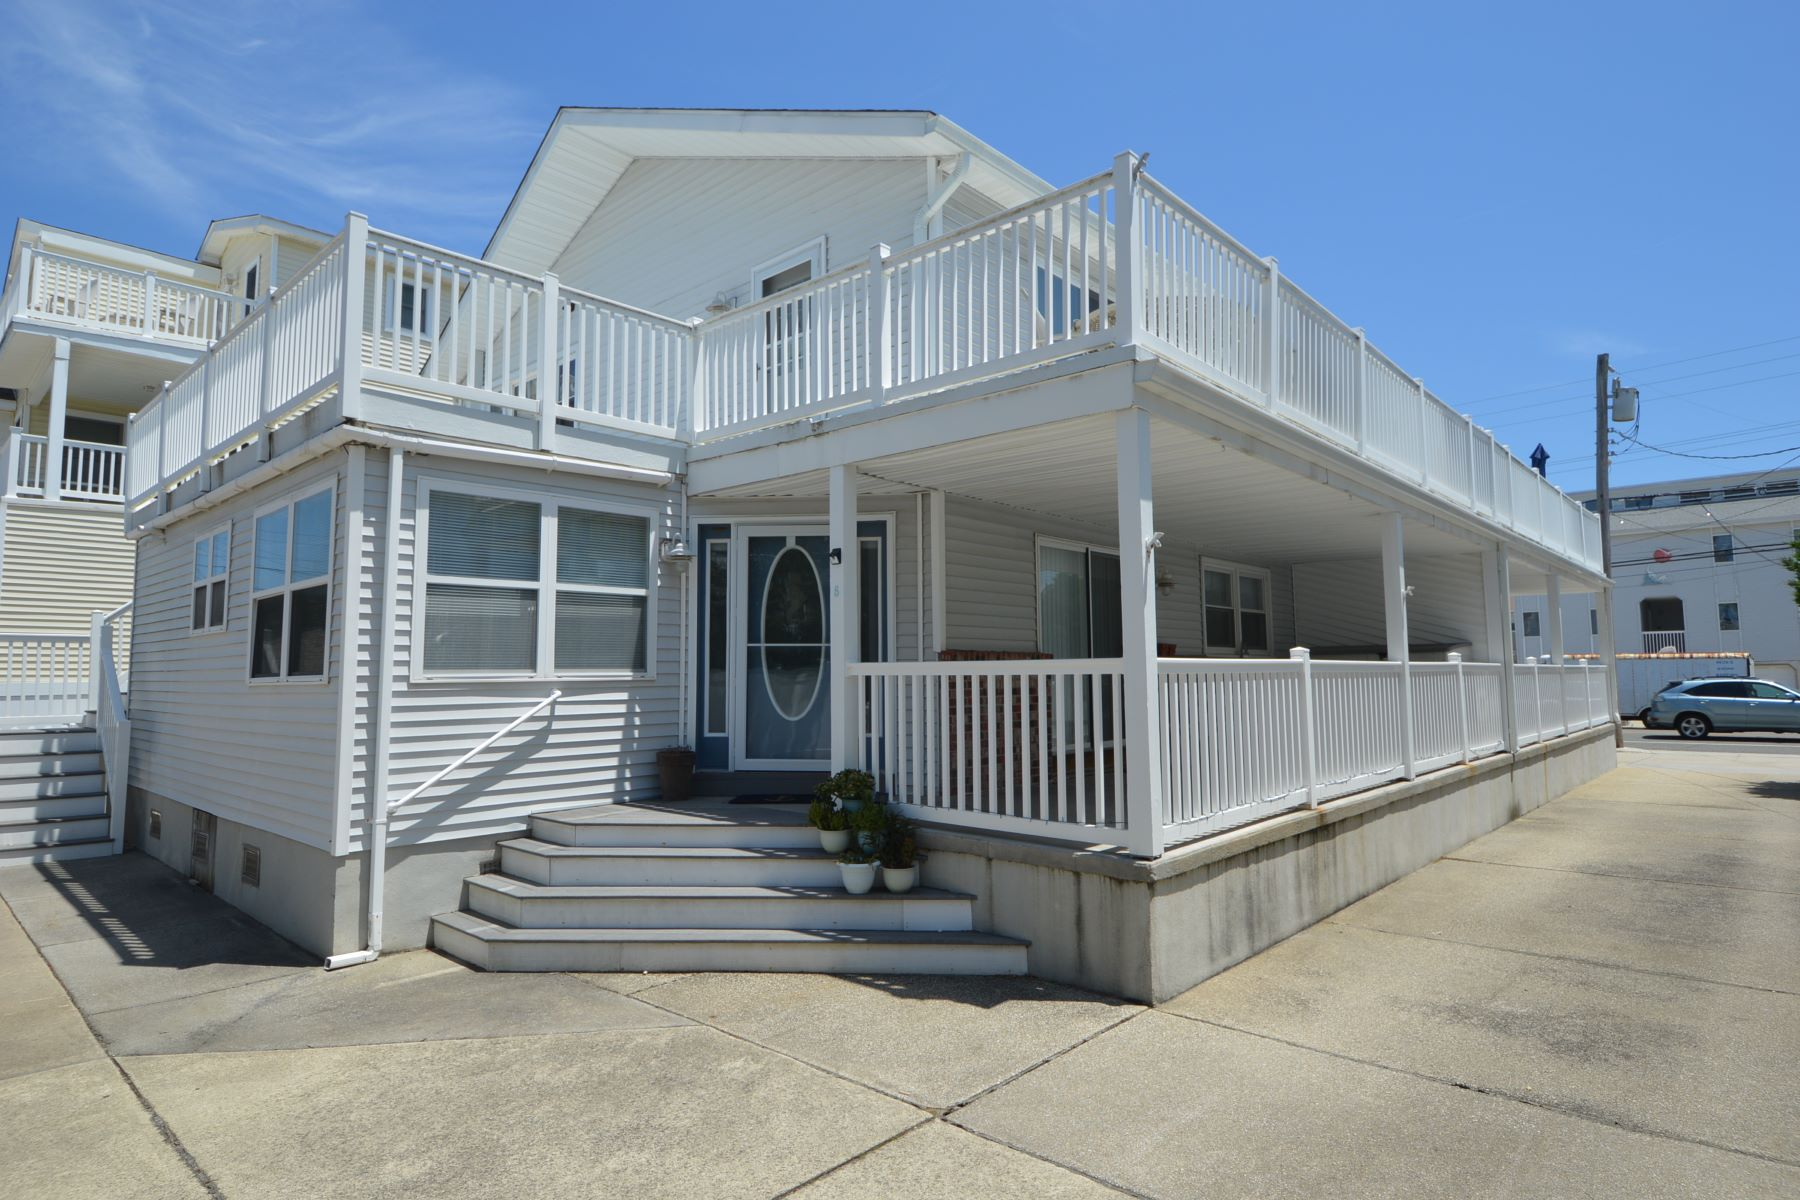 Condominium for Sale at Essential Beach Town Condo 5604 Landis Avenue, Unit B Sea Isle City, New Jersey 08243 United States